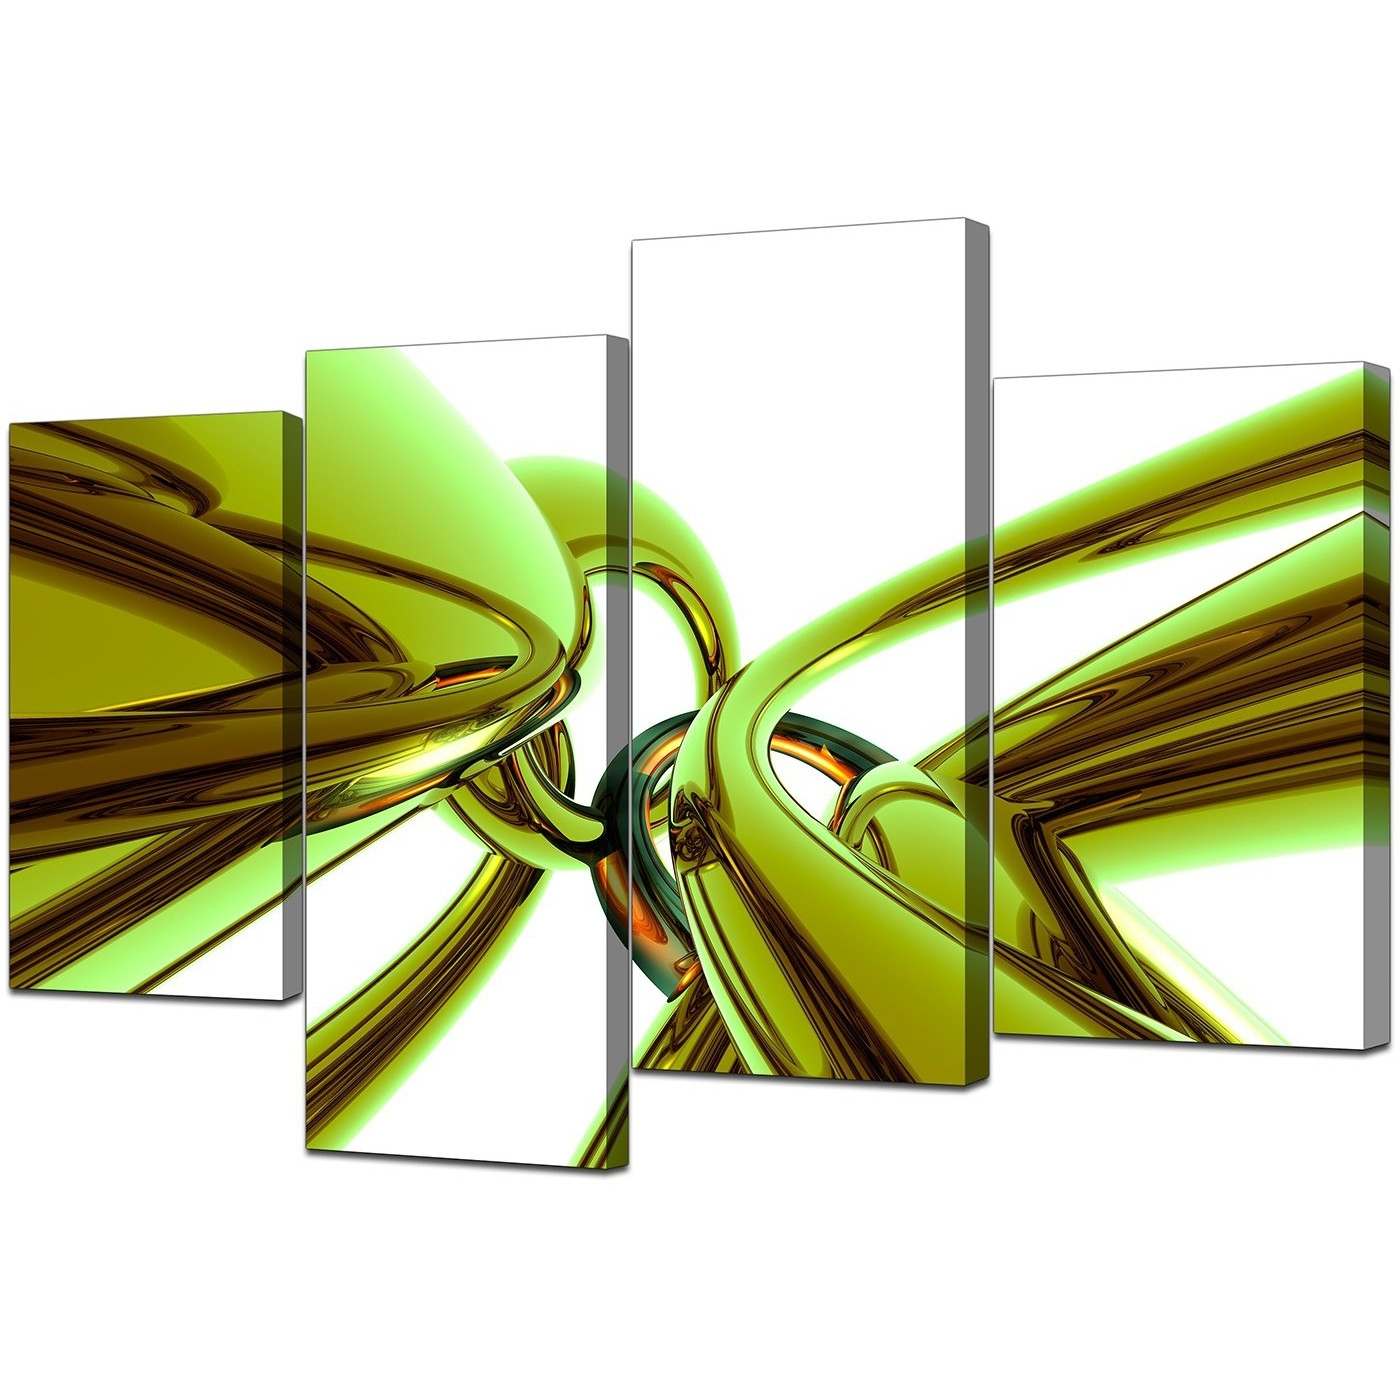 Large Green Wall Art Inside Famous Abstract Canvas Wall Art In Green For Your Living Room – Set Of (View 14 of 15)